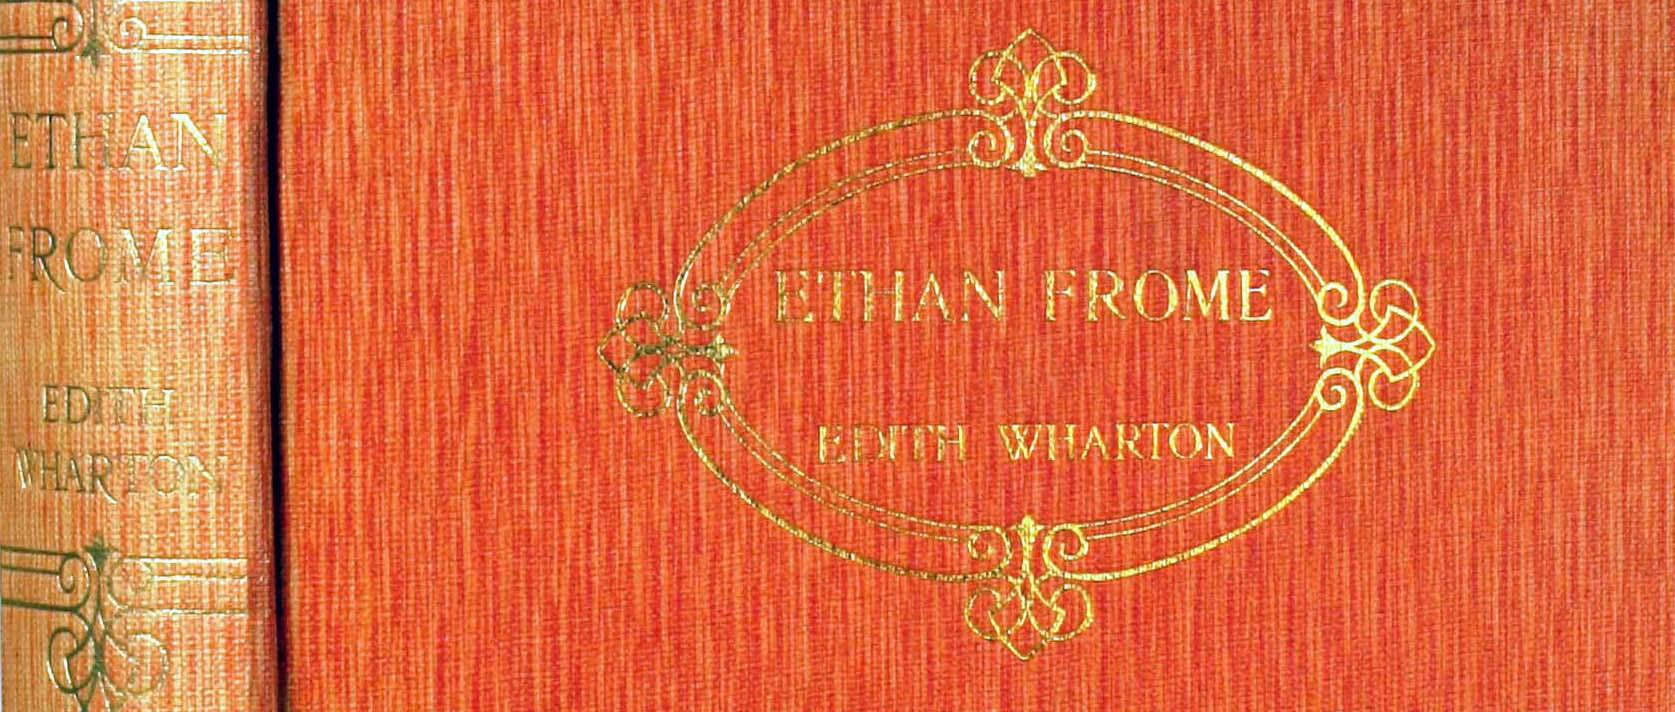 Edith Wharton, Ethan Frome (1911). An extraordinary signed association copy.